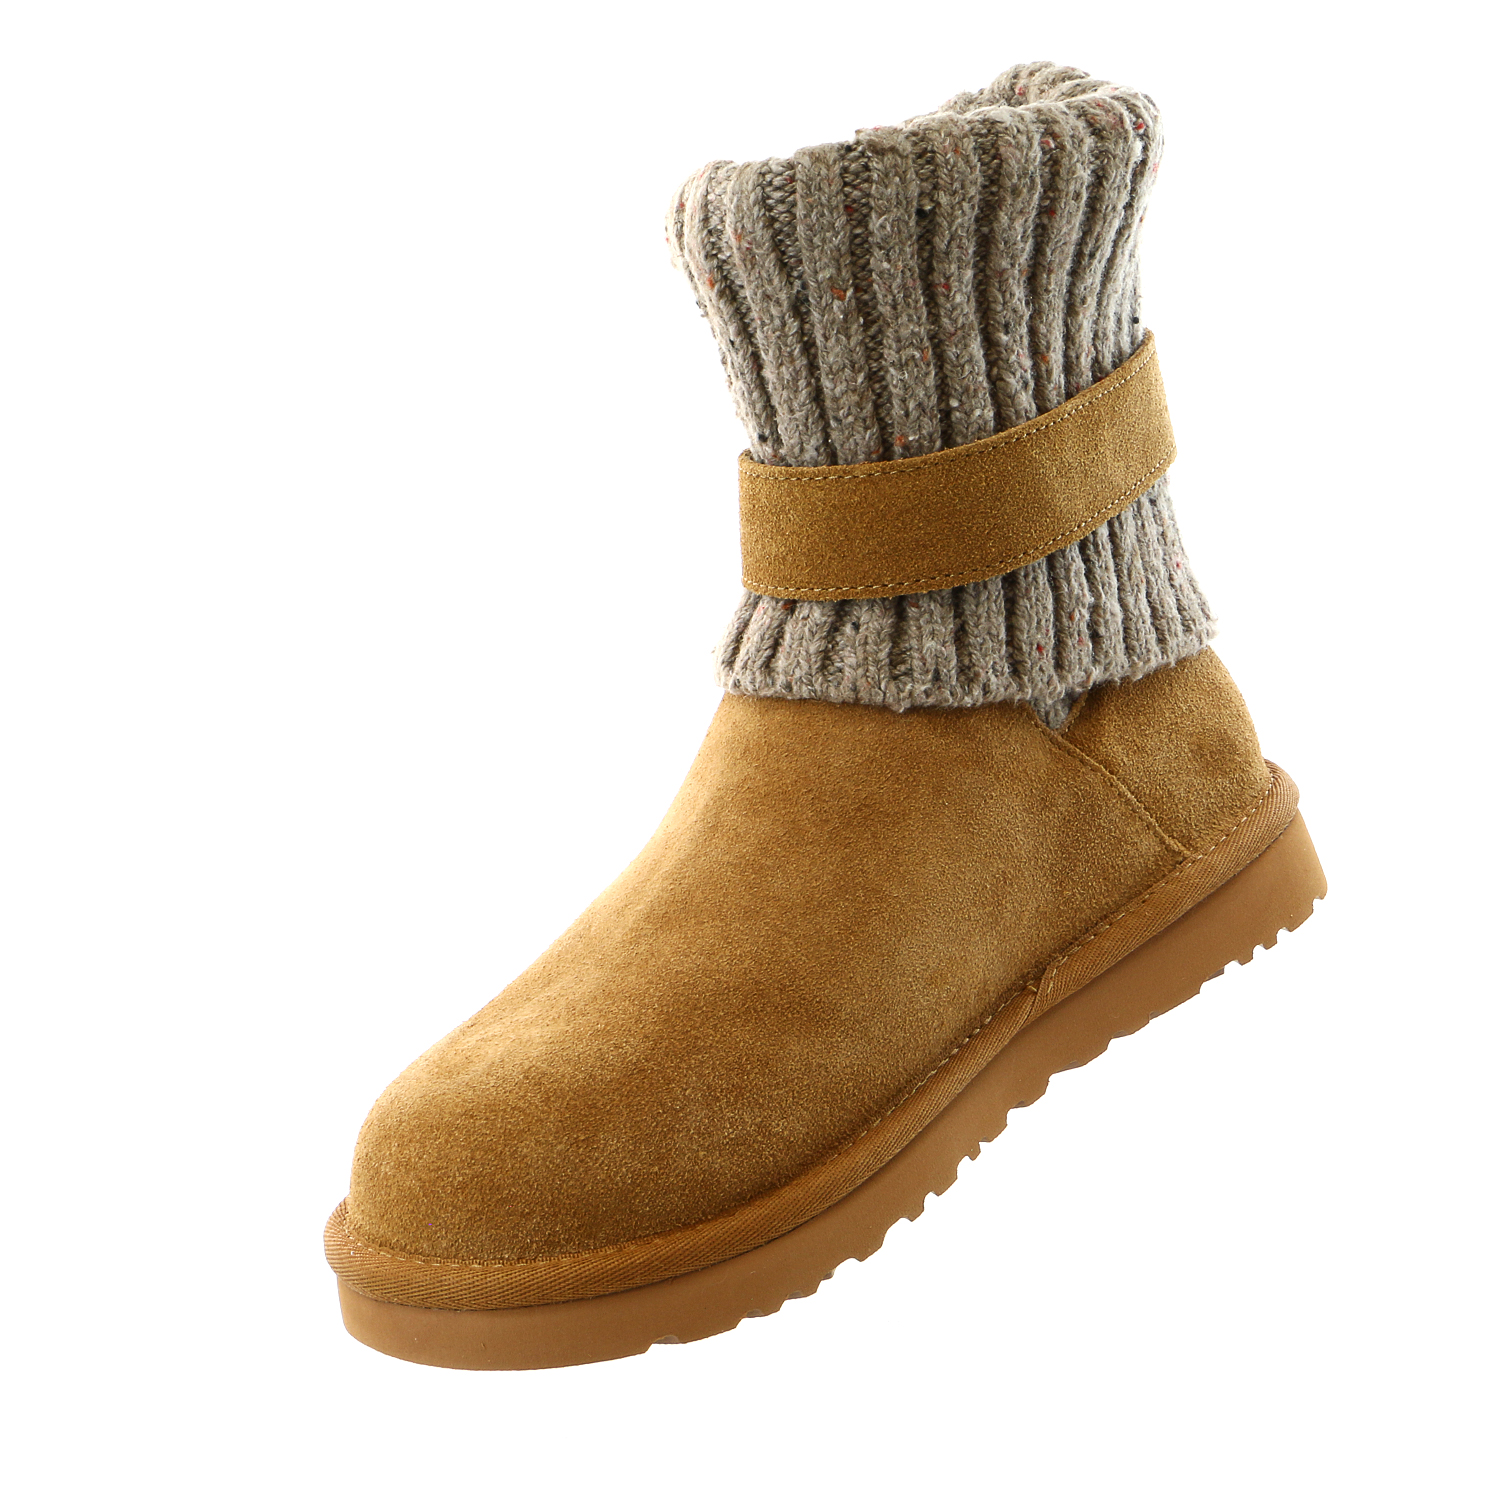 7d3de79cb63 Ugg Womens Cambridge Winter Boot Chestnut - cheap watches mgc-gas.com